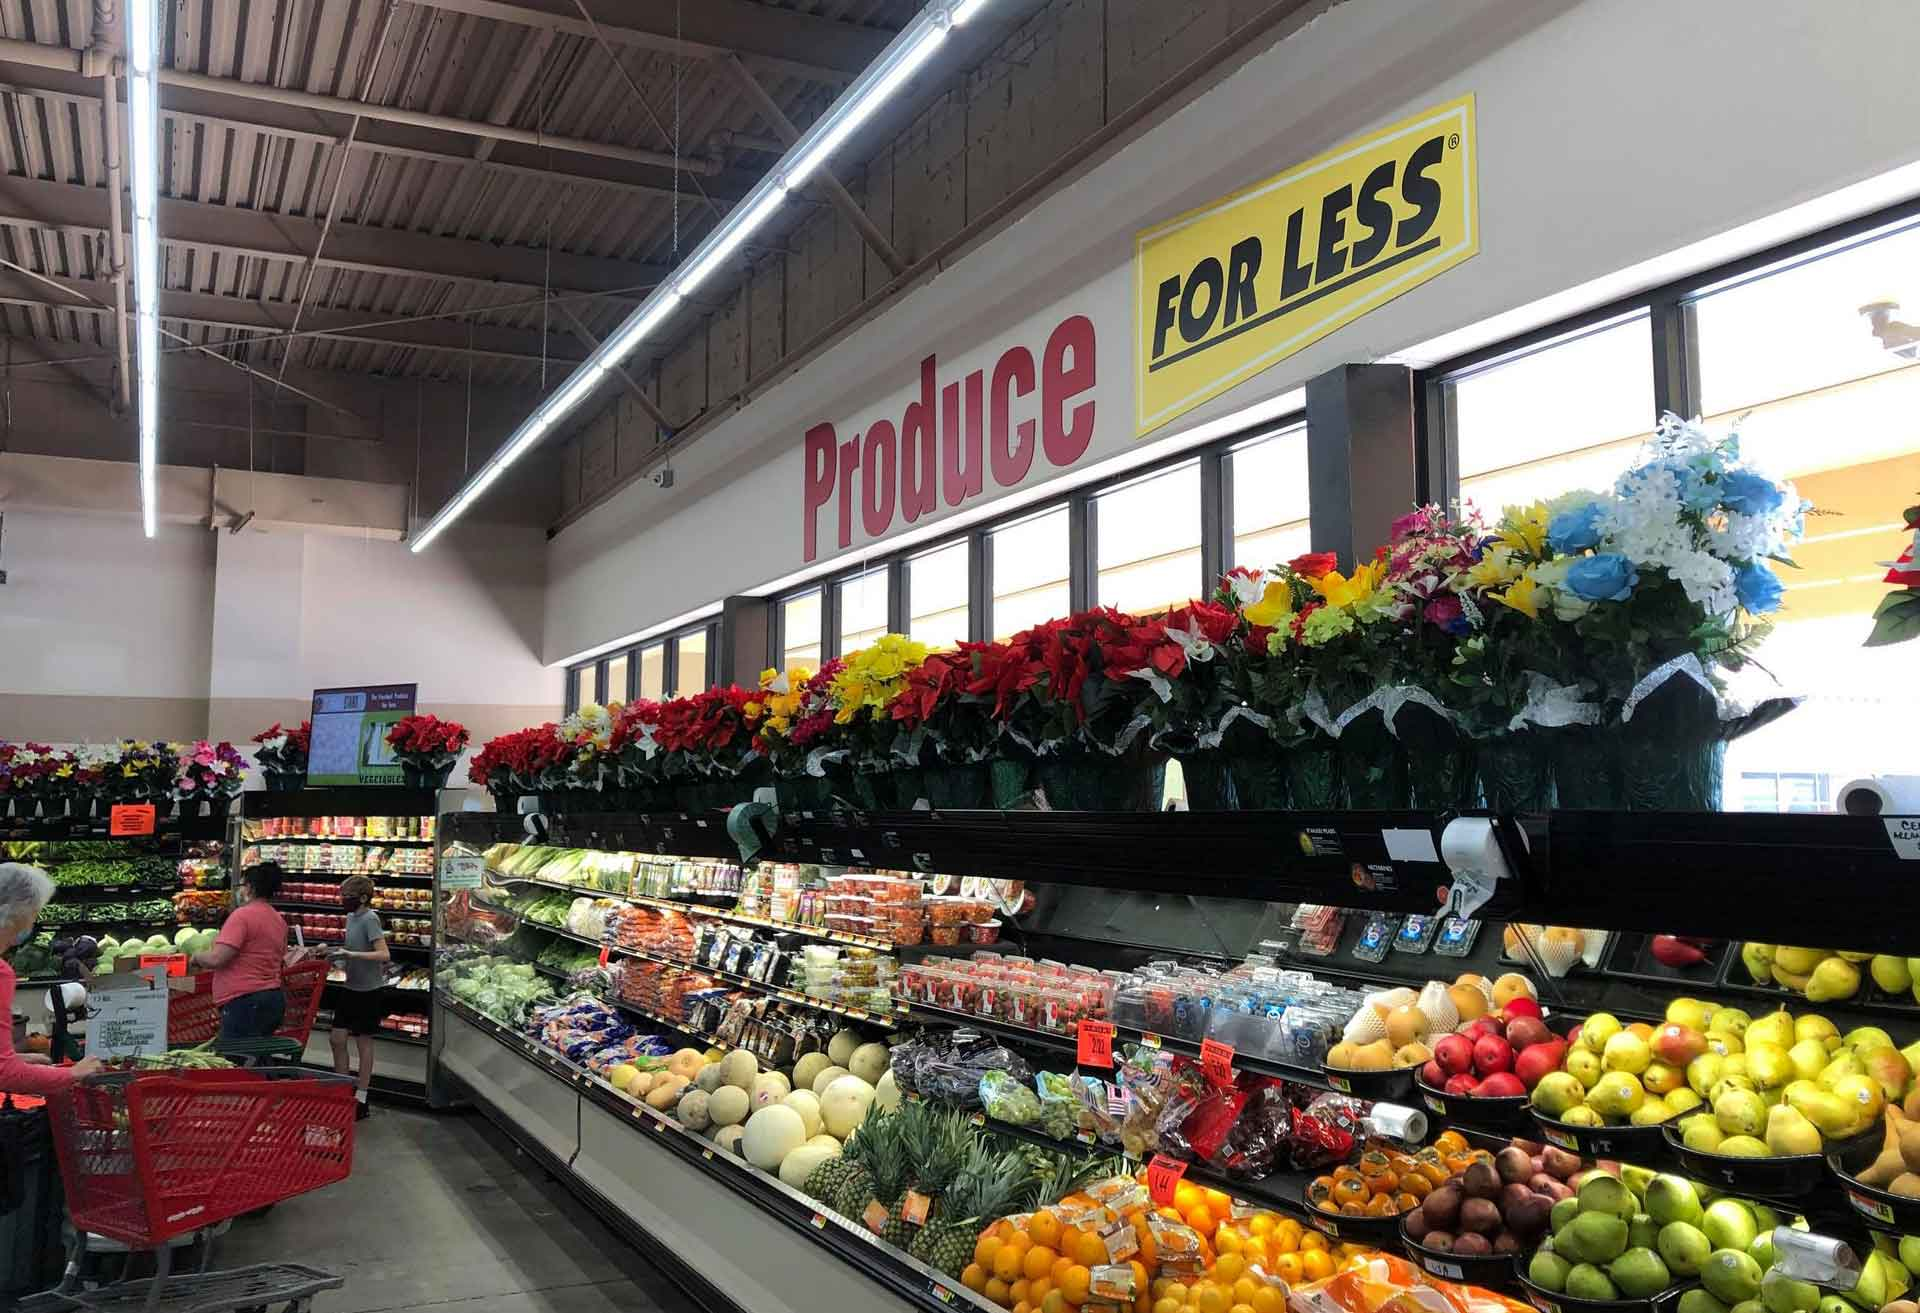 Produce department